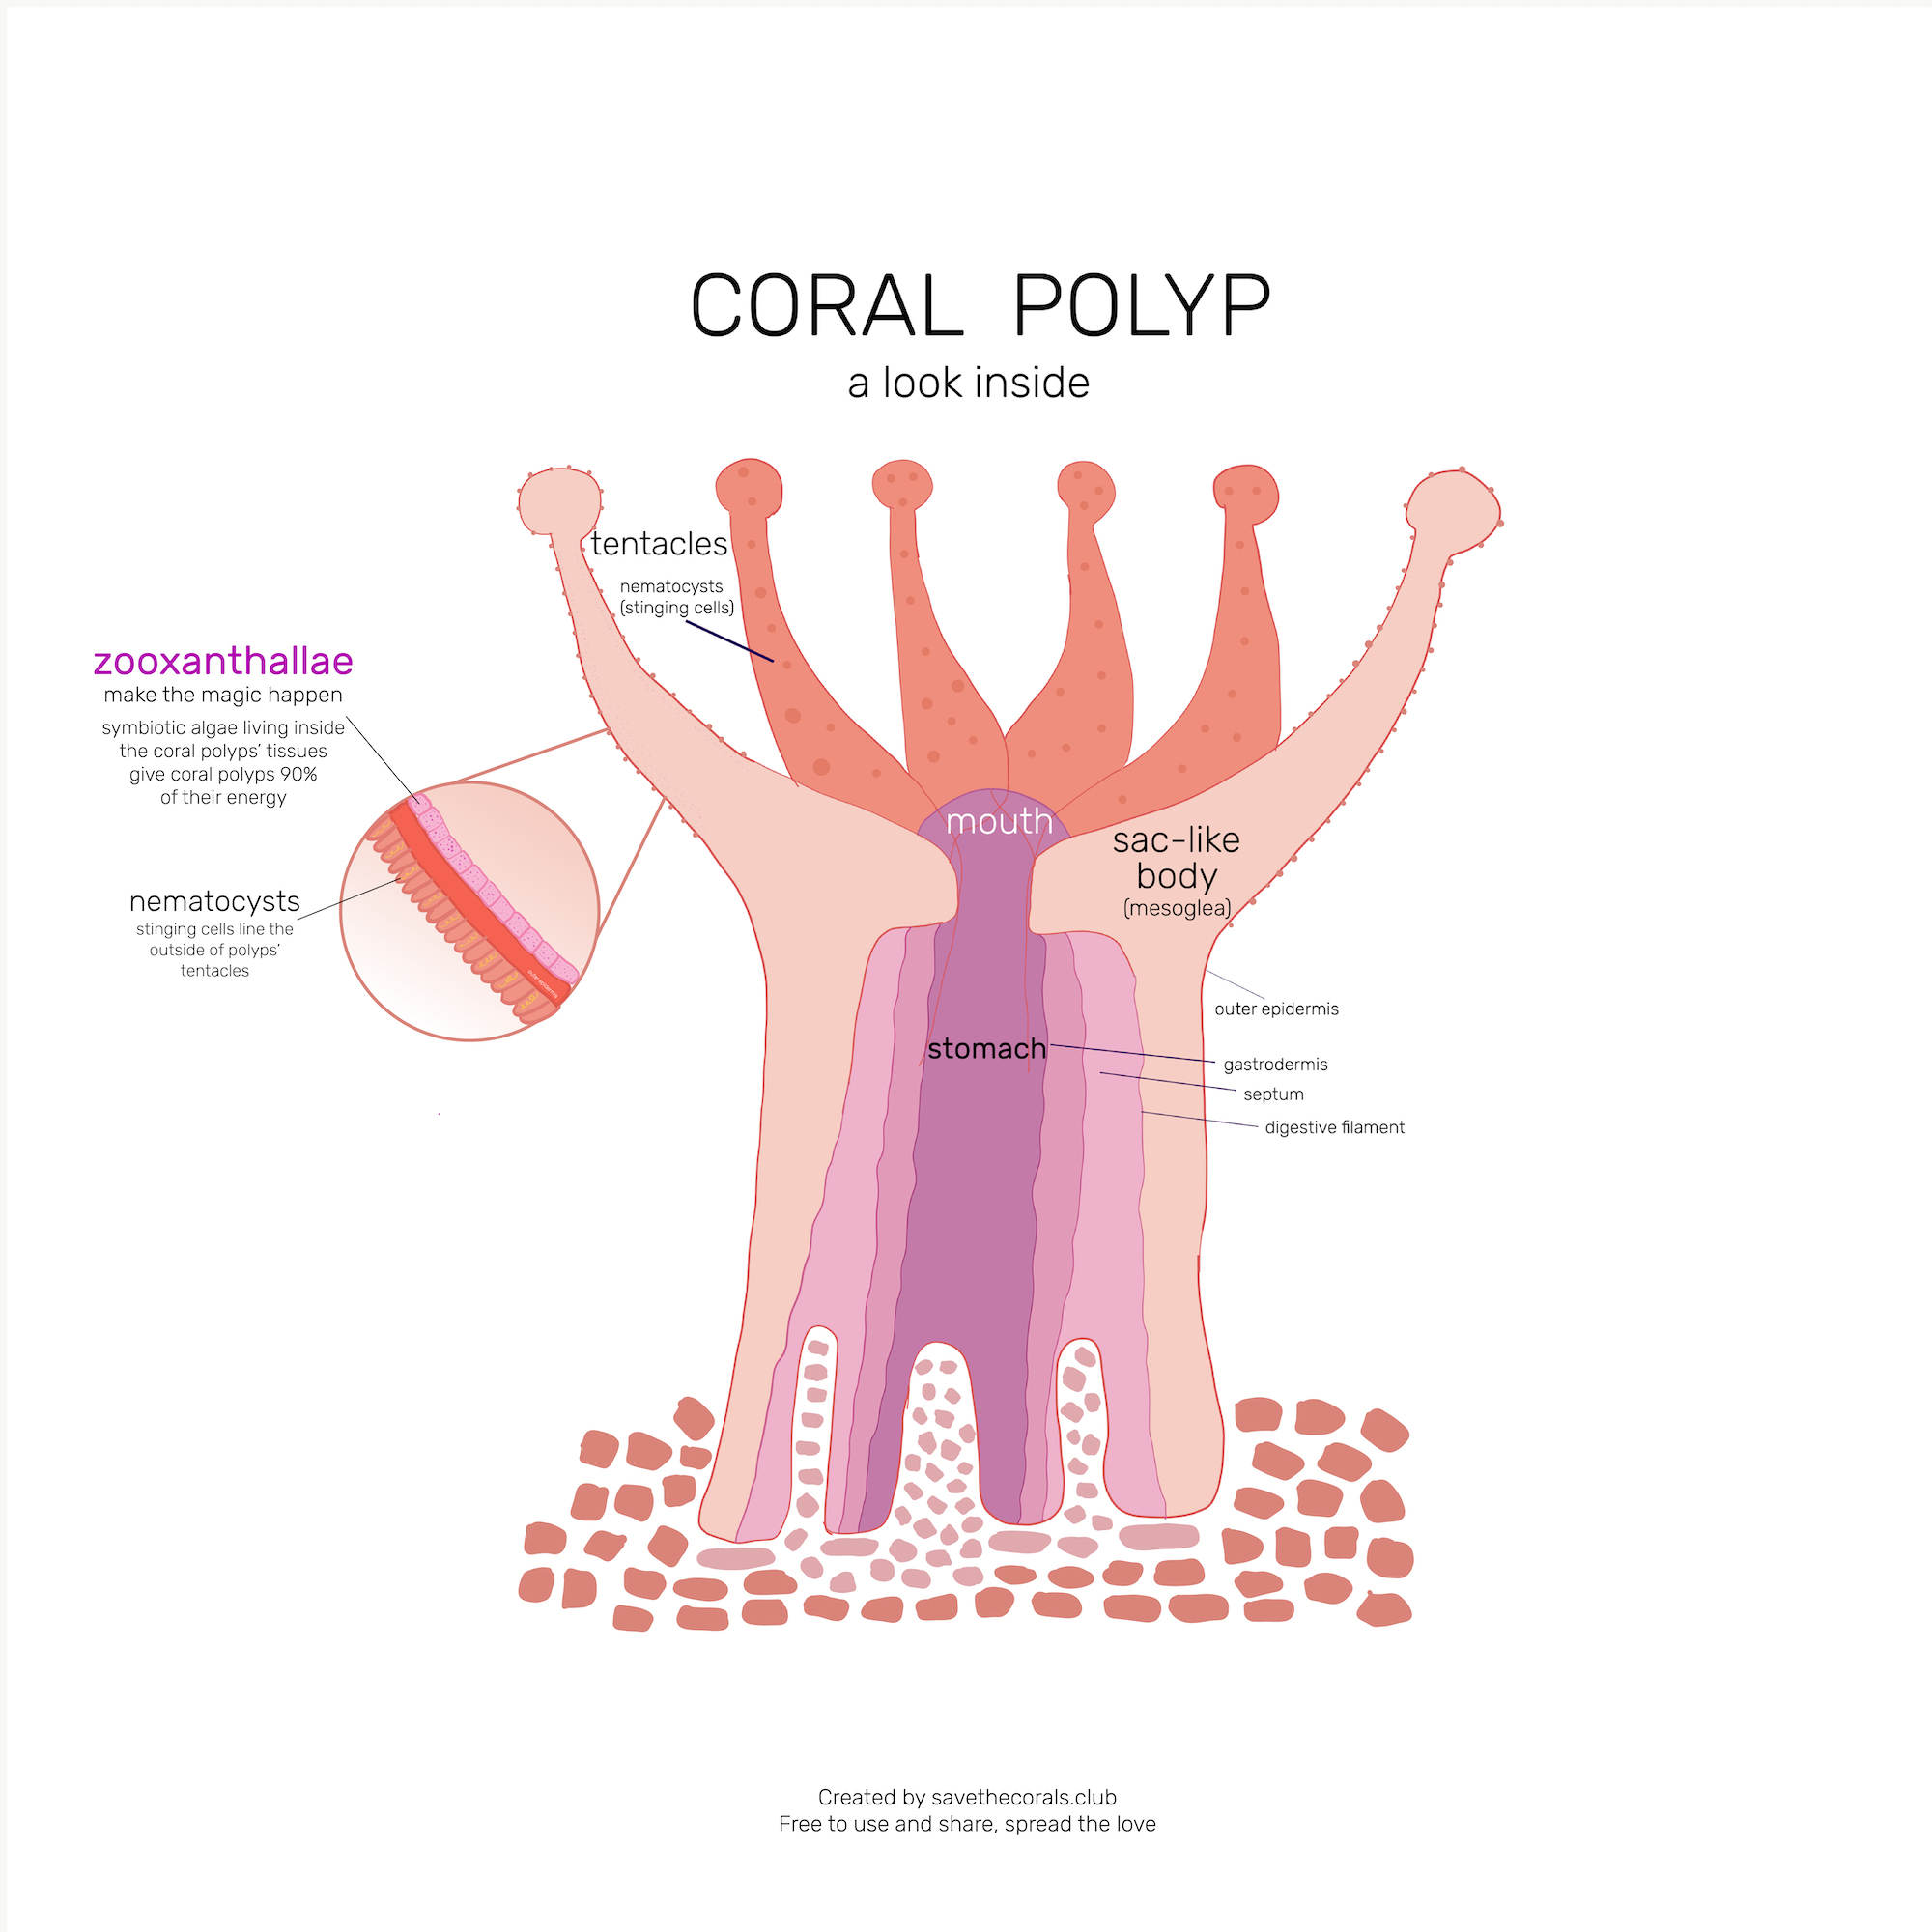 save-the-corals-coral-polyp-diagram-inside-zooxanthallae.jpg